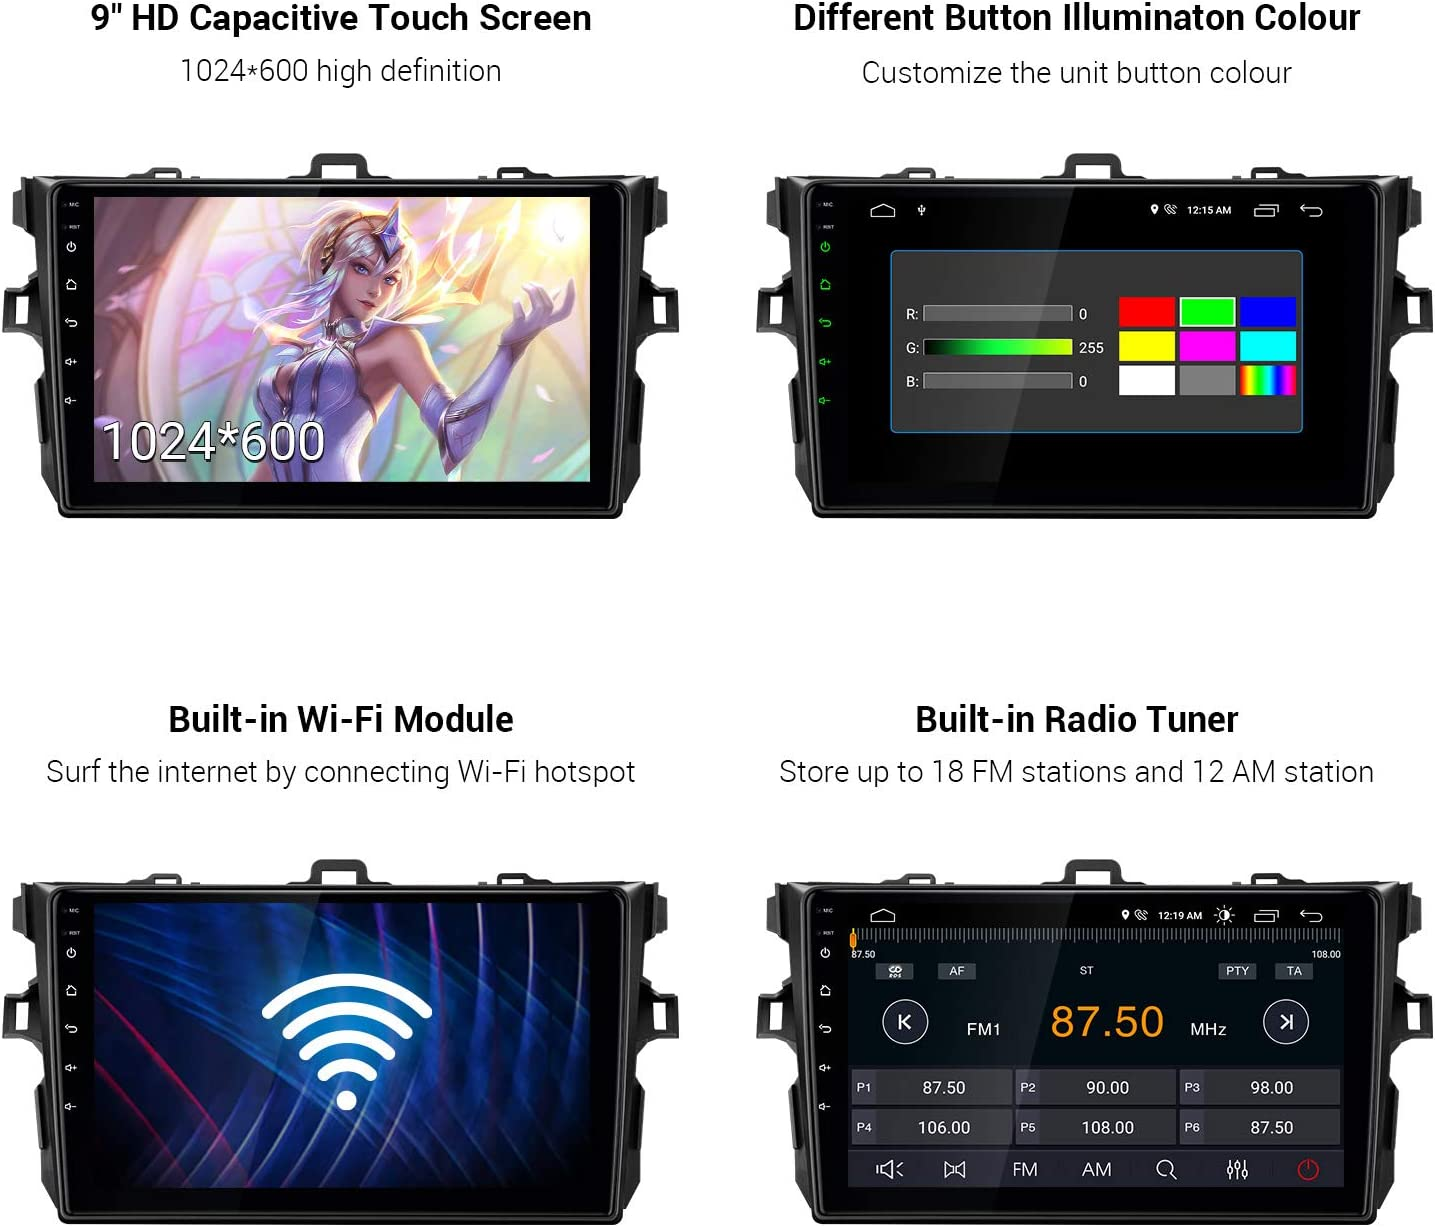 XTRONS Android 10.0 Car Stereo Radio Player 9 Inch IPS Touch Screen GPS Navigation Built-in DSP Bluetooth Head Unit Supports Android Auto Full RCA Backup Camera WiFi OBD2 DVR TPMS for Toyota Corolla